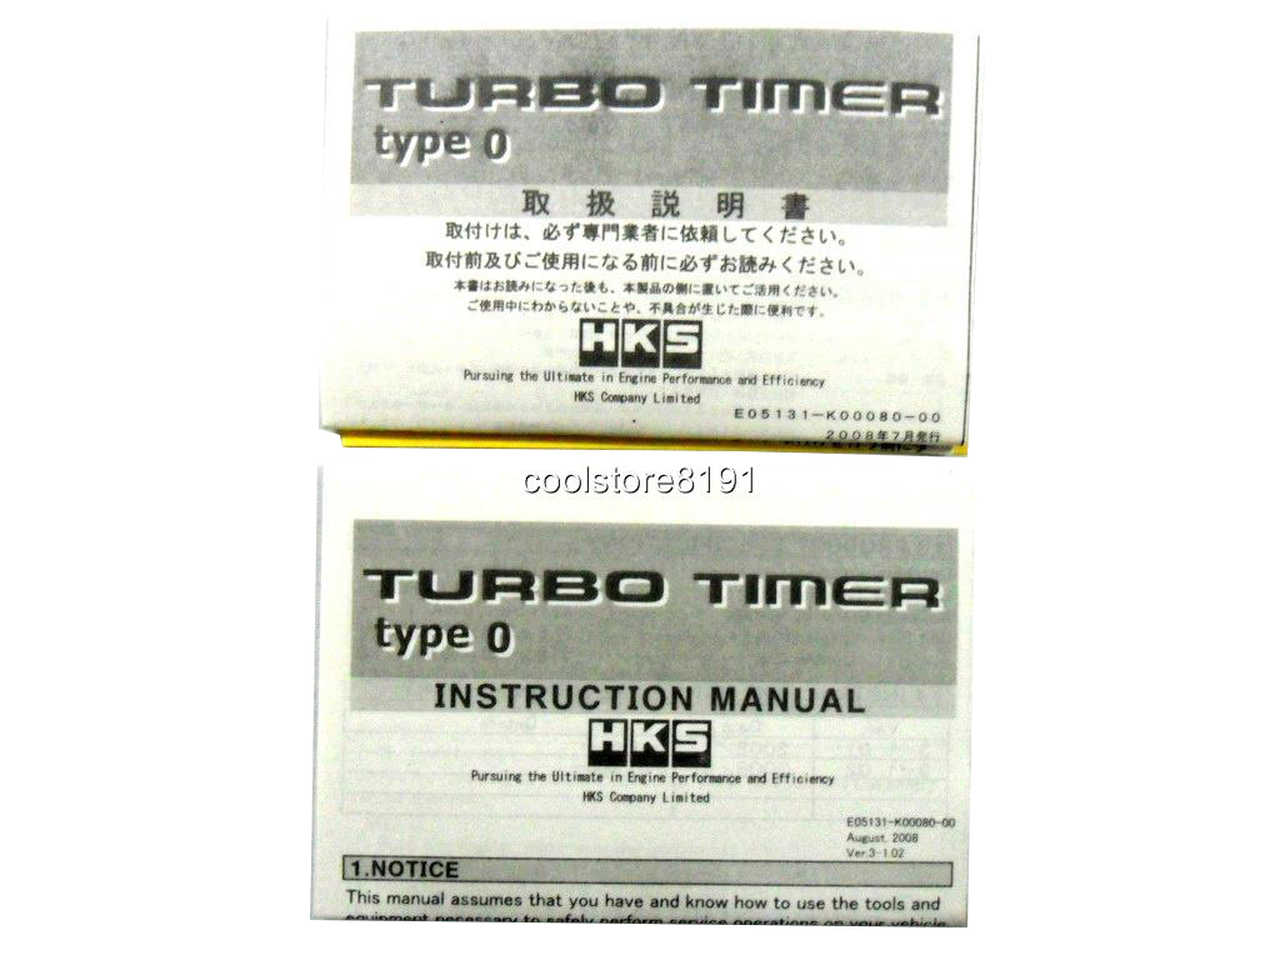 apexi turbo timer manual instruction